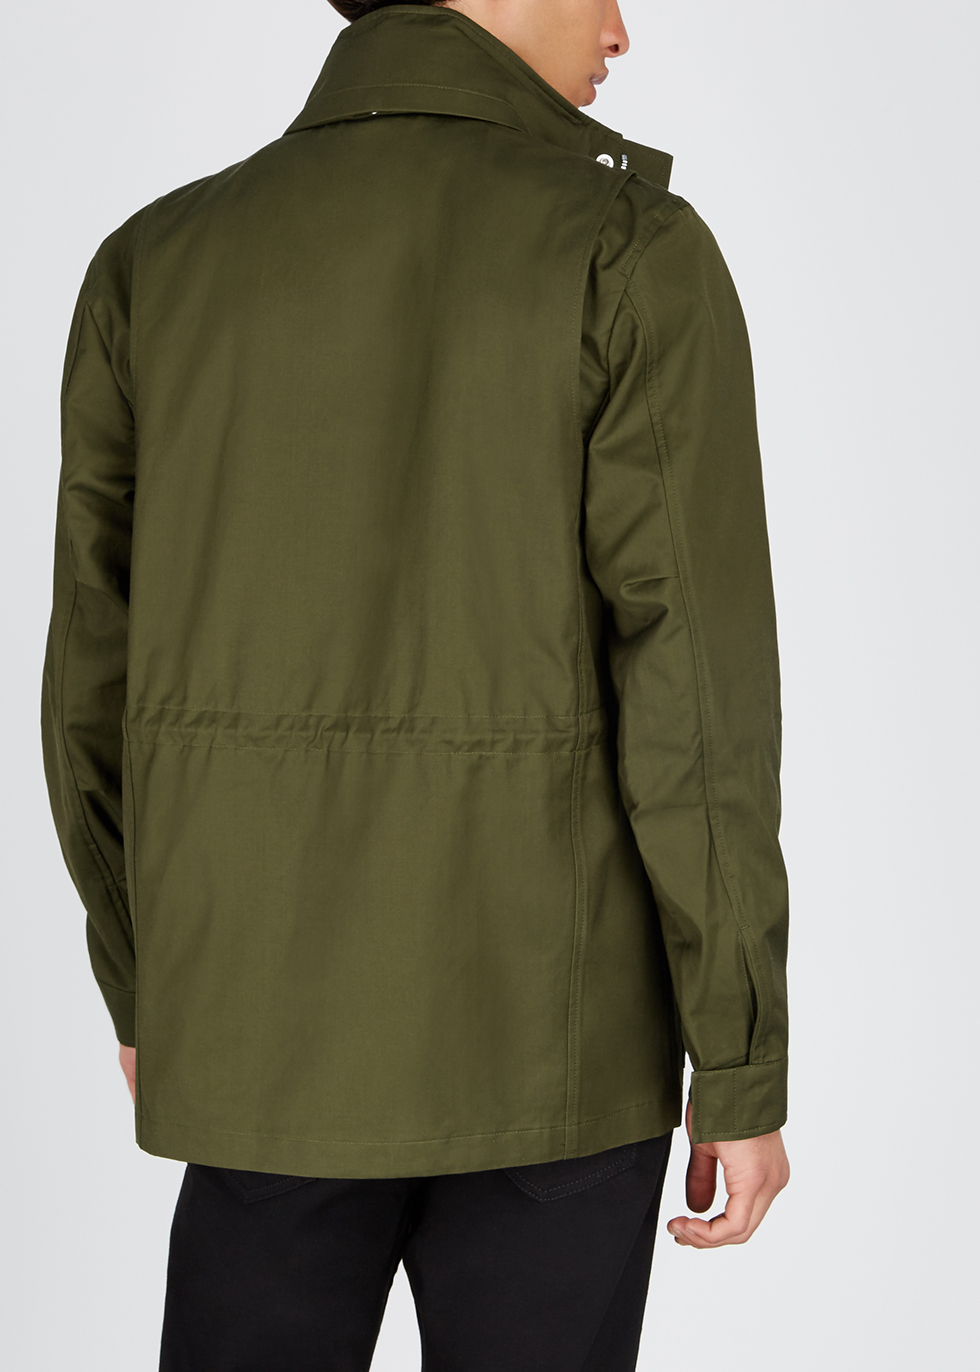 Army green cotton-blend field jacket - Paul Smith